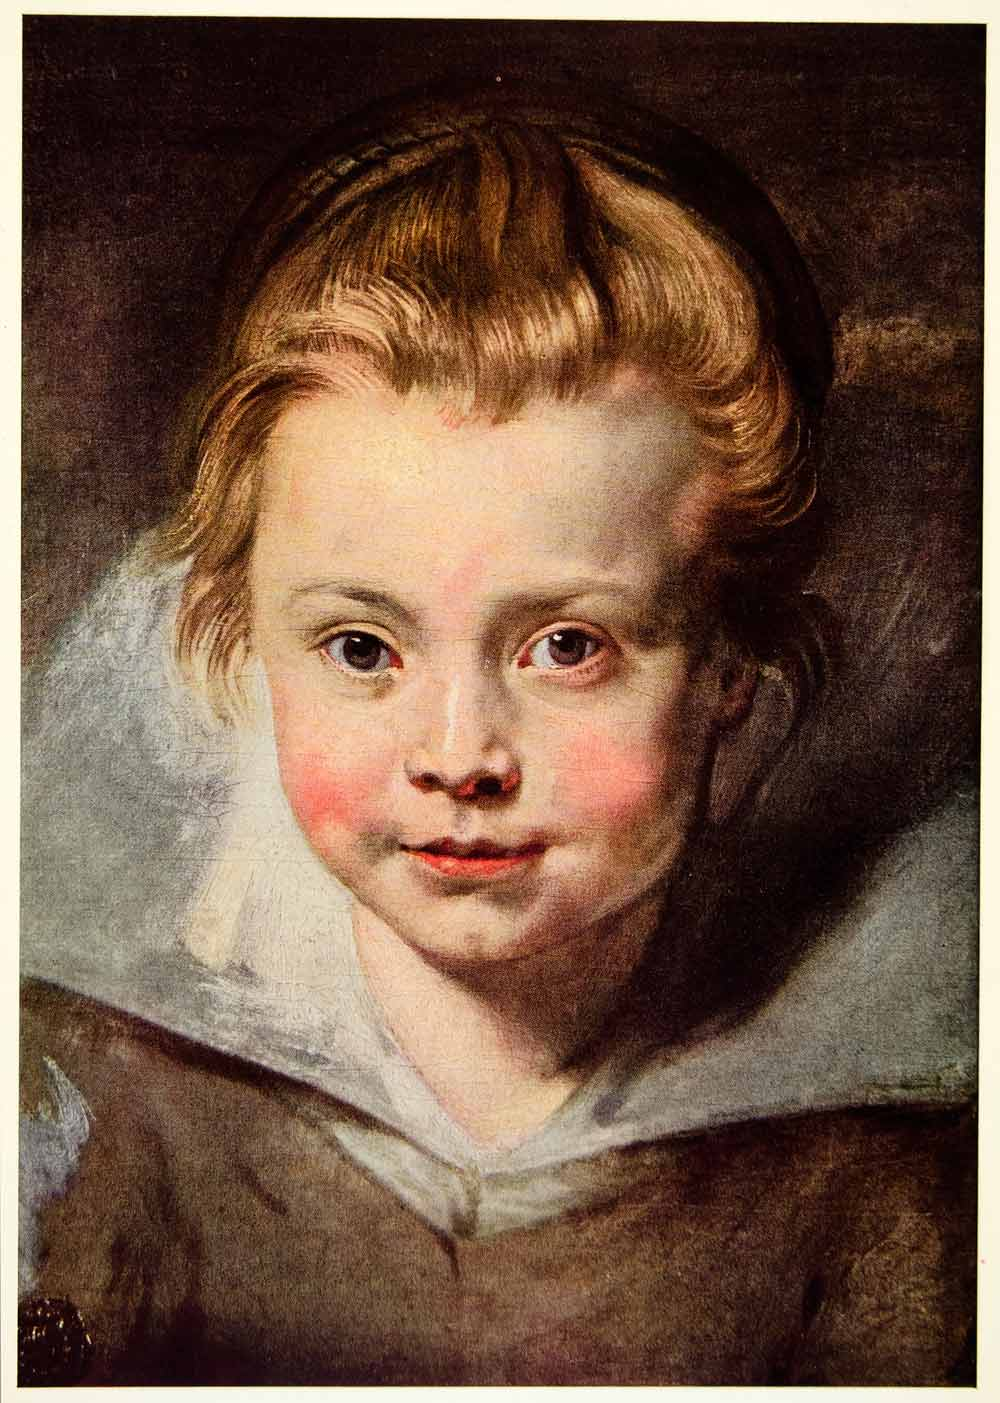 1950 Color Print Head Child Baby Peter Paul Rubens